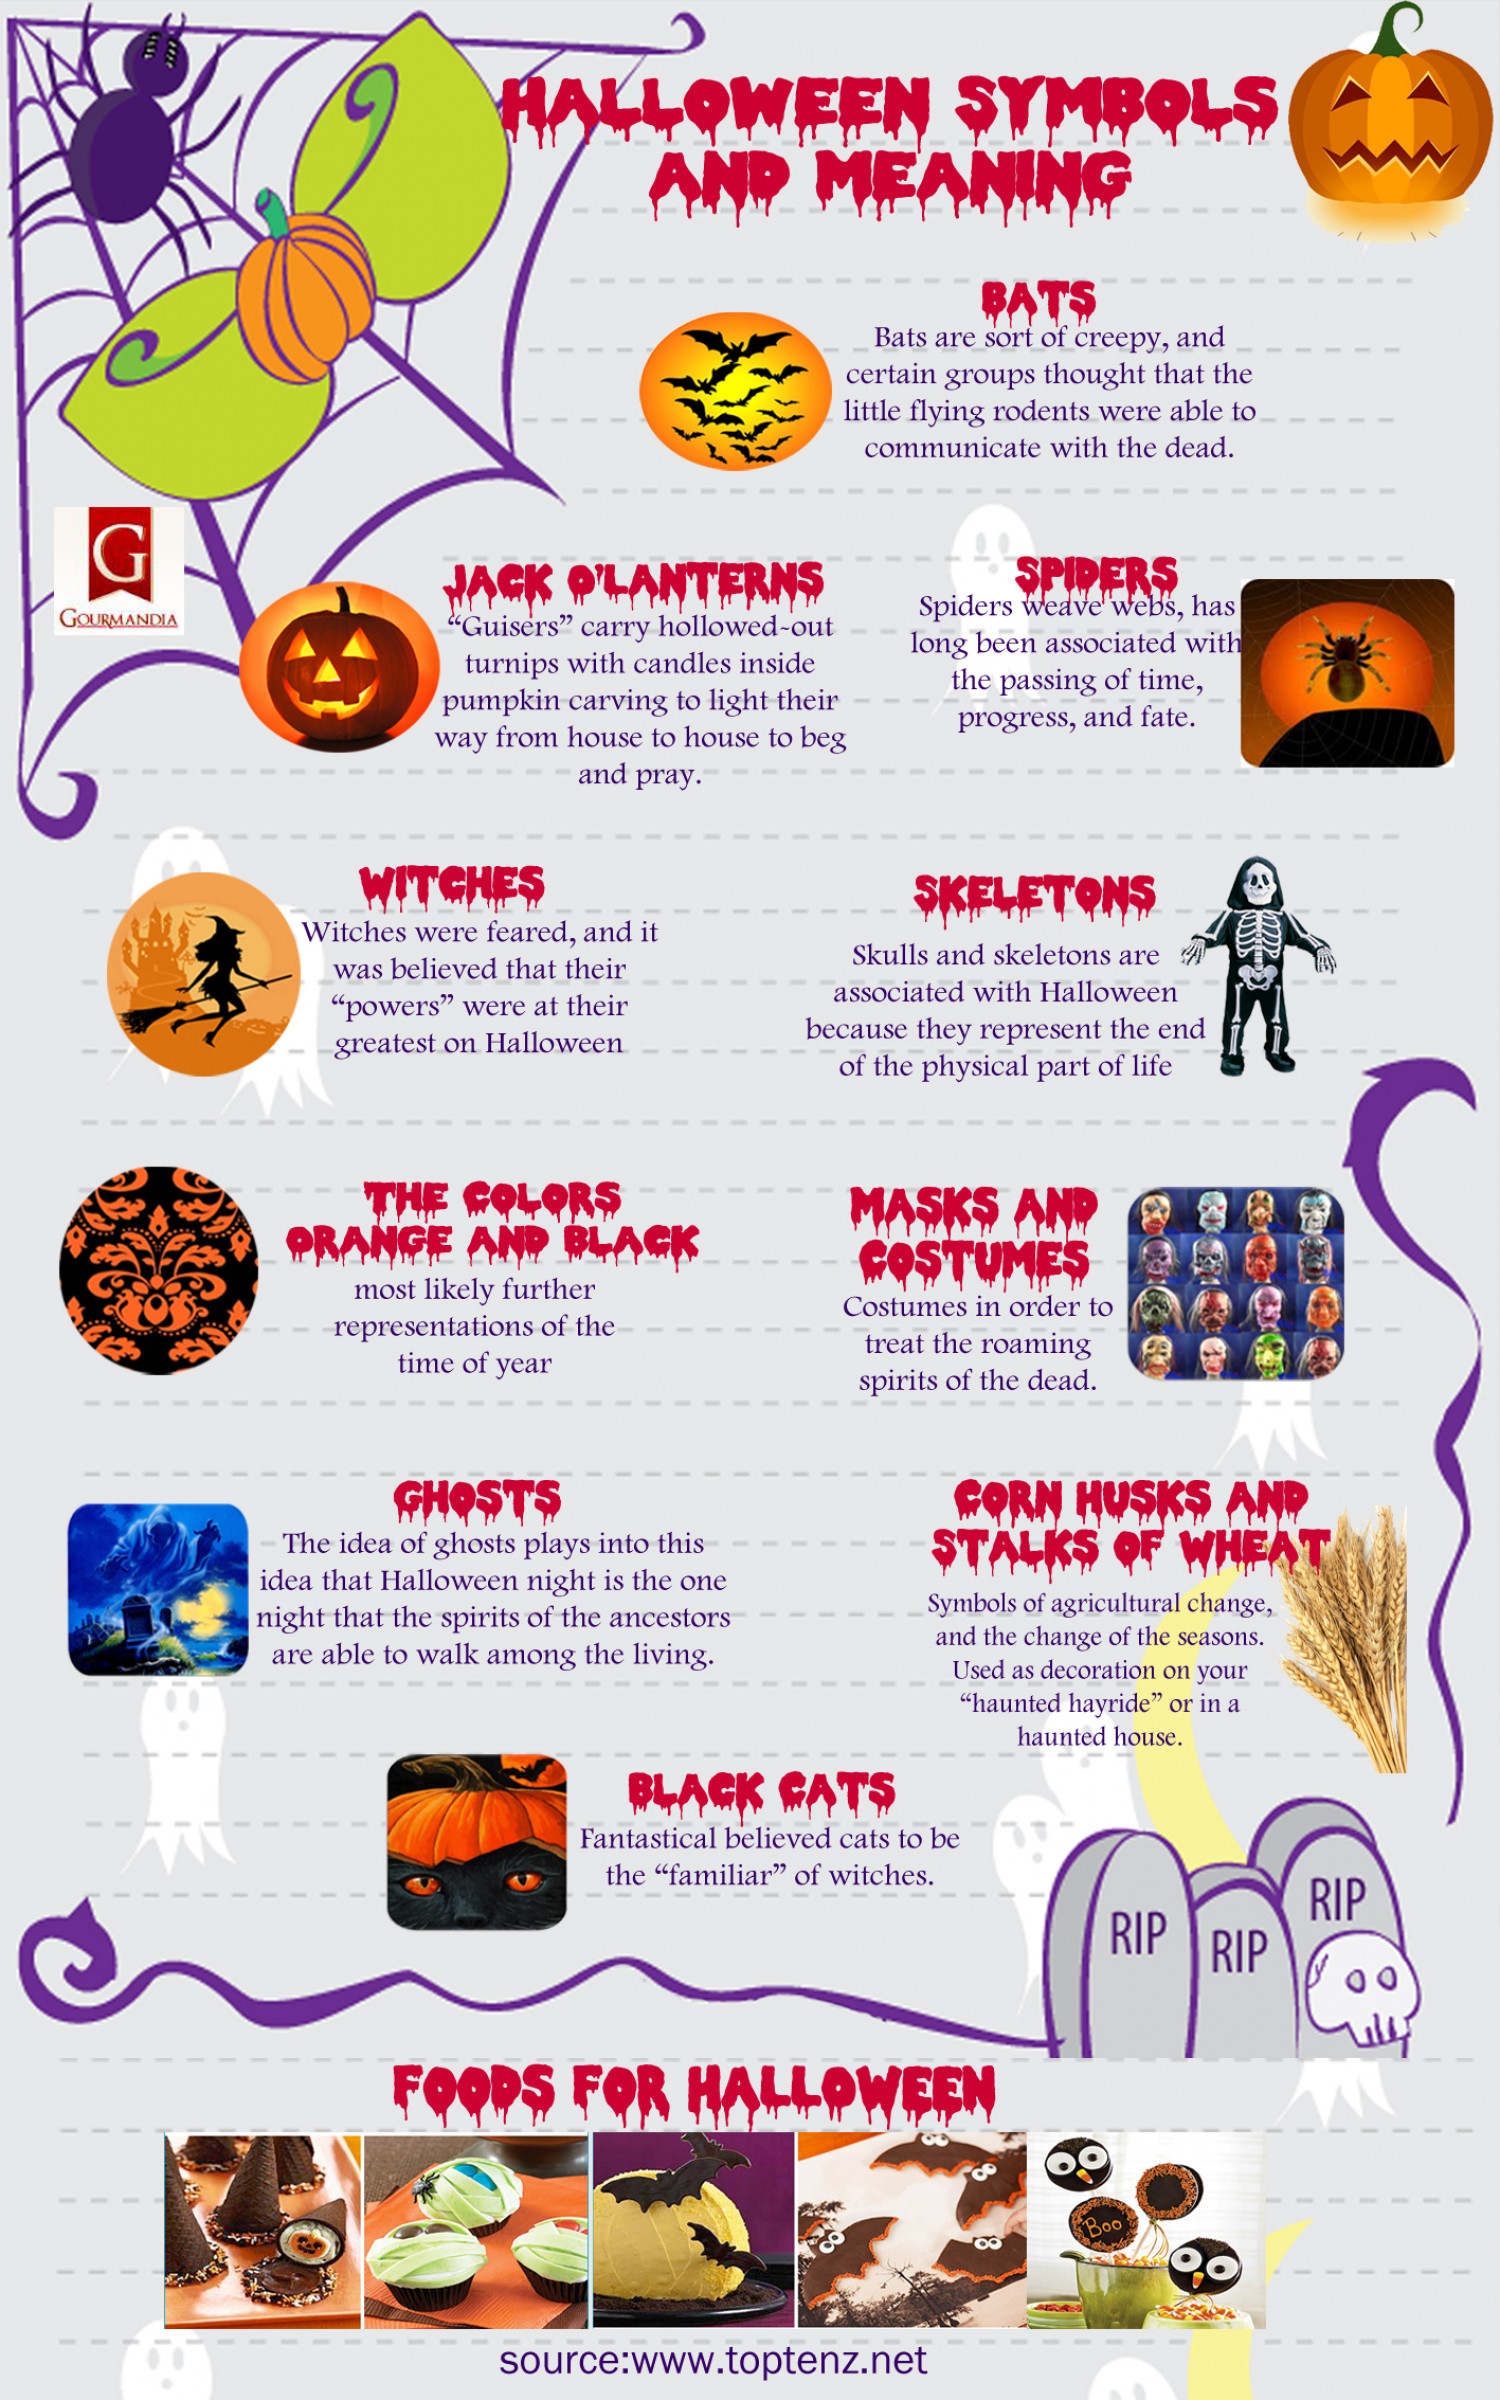 Halloween symbols and meaning visual halloween symbols and meaning infographic biocorpaavc Choice Image